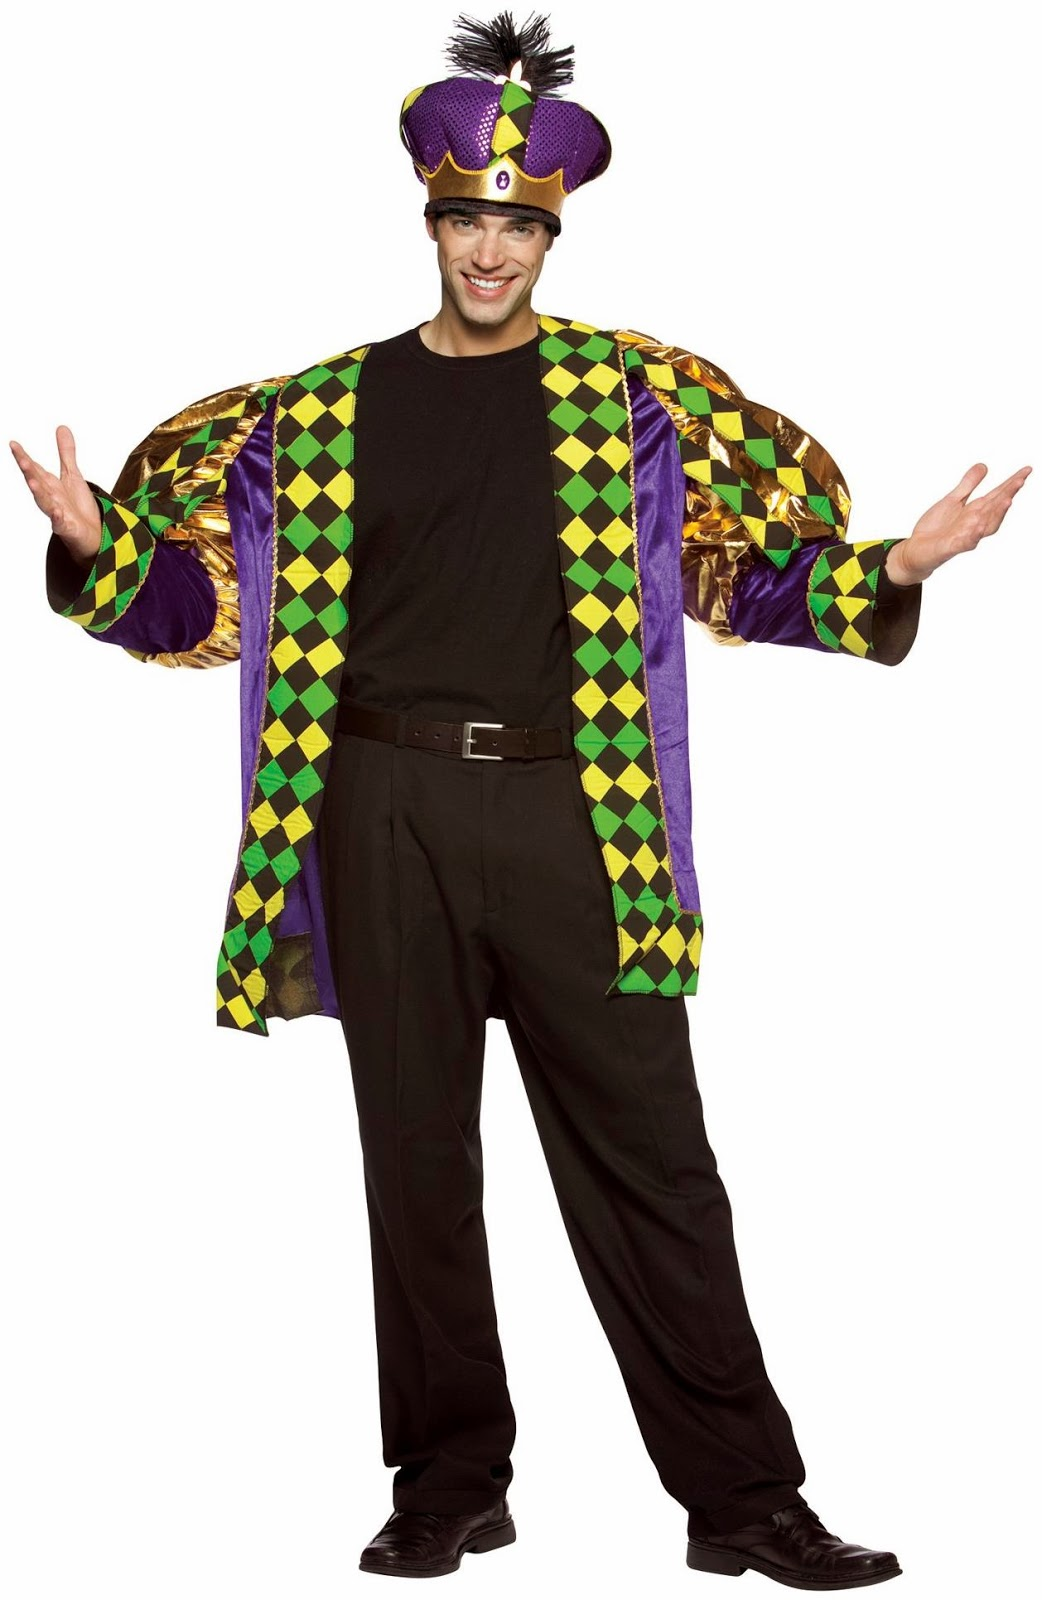 Mardi_Gras_King_Costume